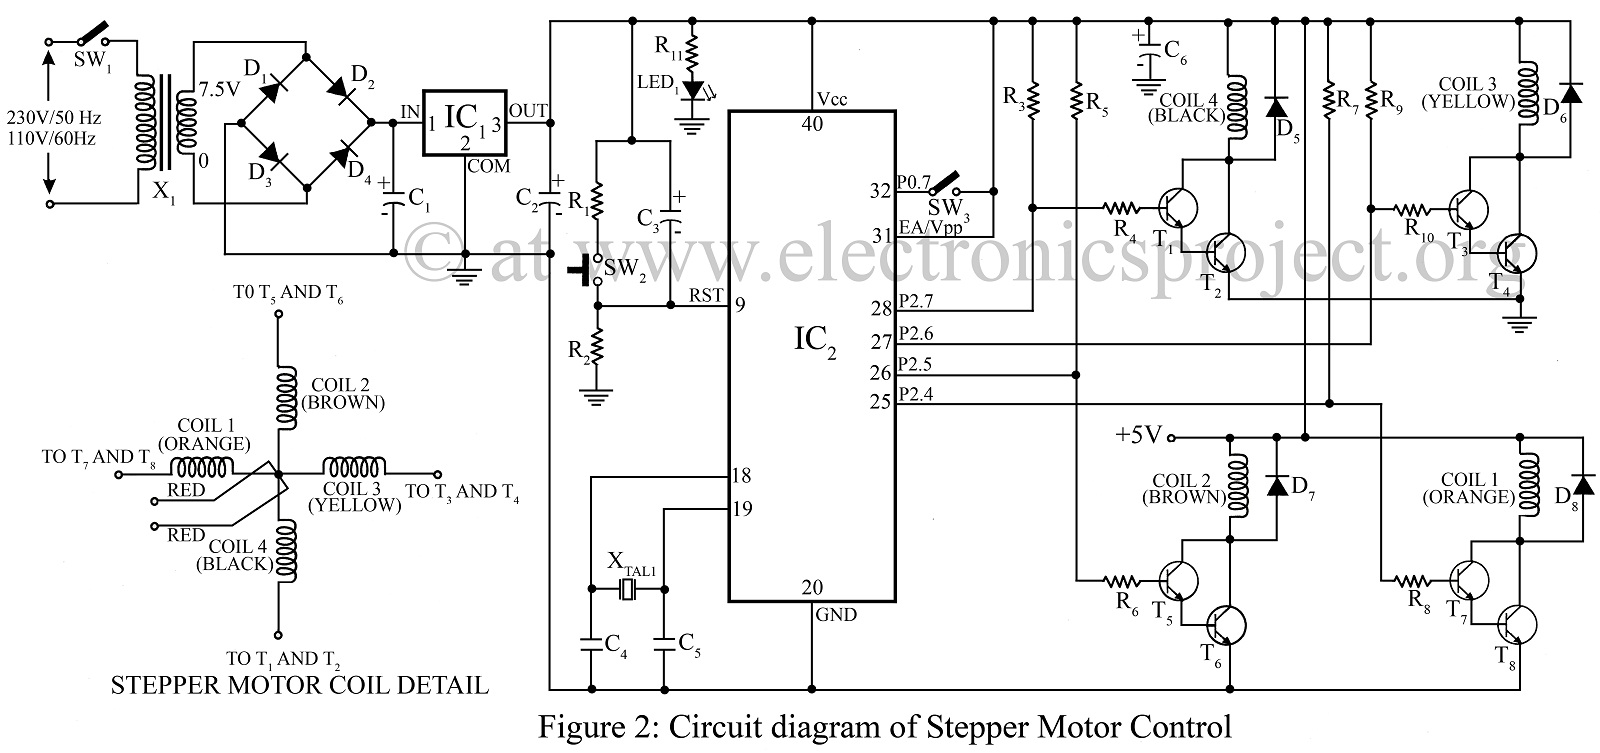 > circuits > Stepper motor control using microcontroller